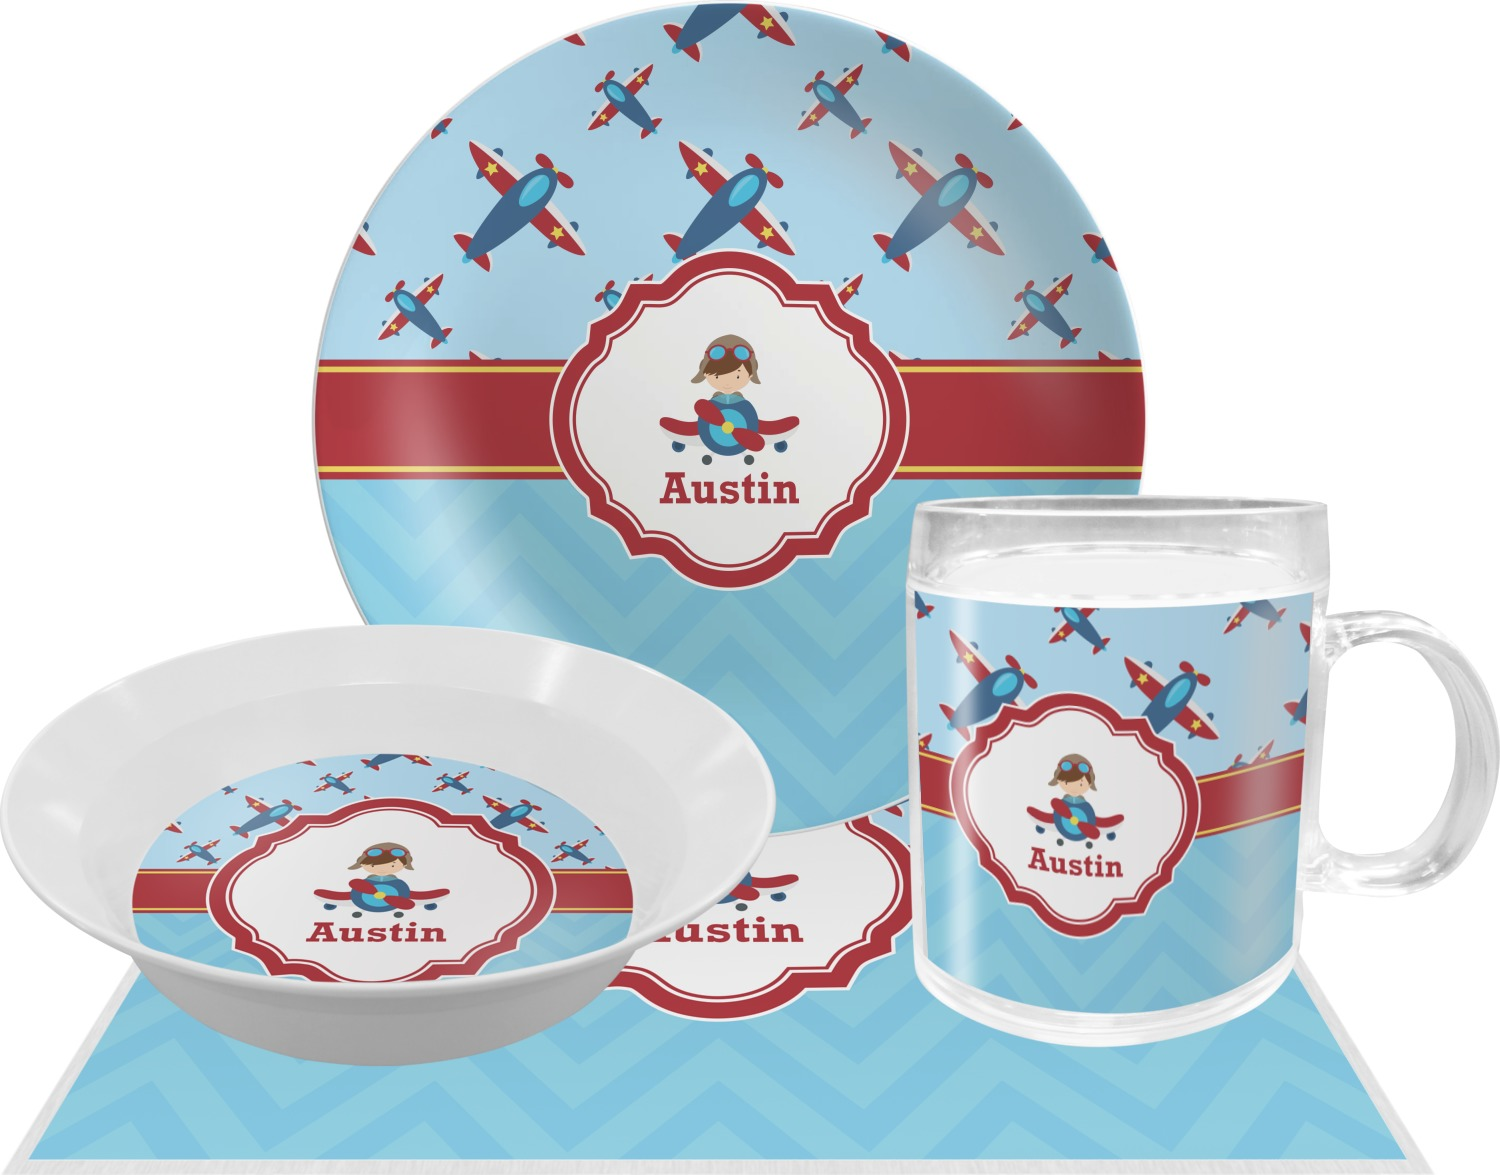 Airplane Theme Dinner Set - 4 Pc (Personalized)  sc 1 st  YouCustomizeIt & Airplane Theme Dinner Set - 4 Pc (Personalized) - YouCustomizeIt